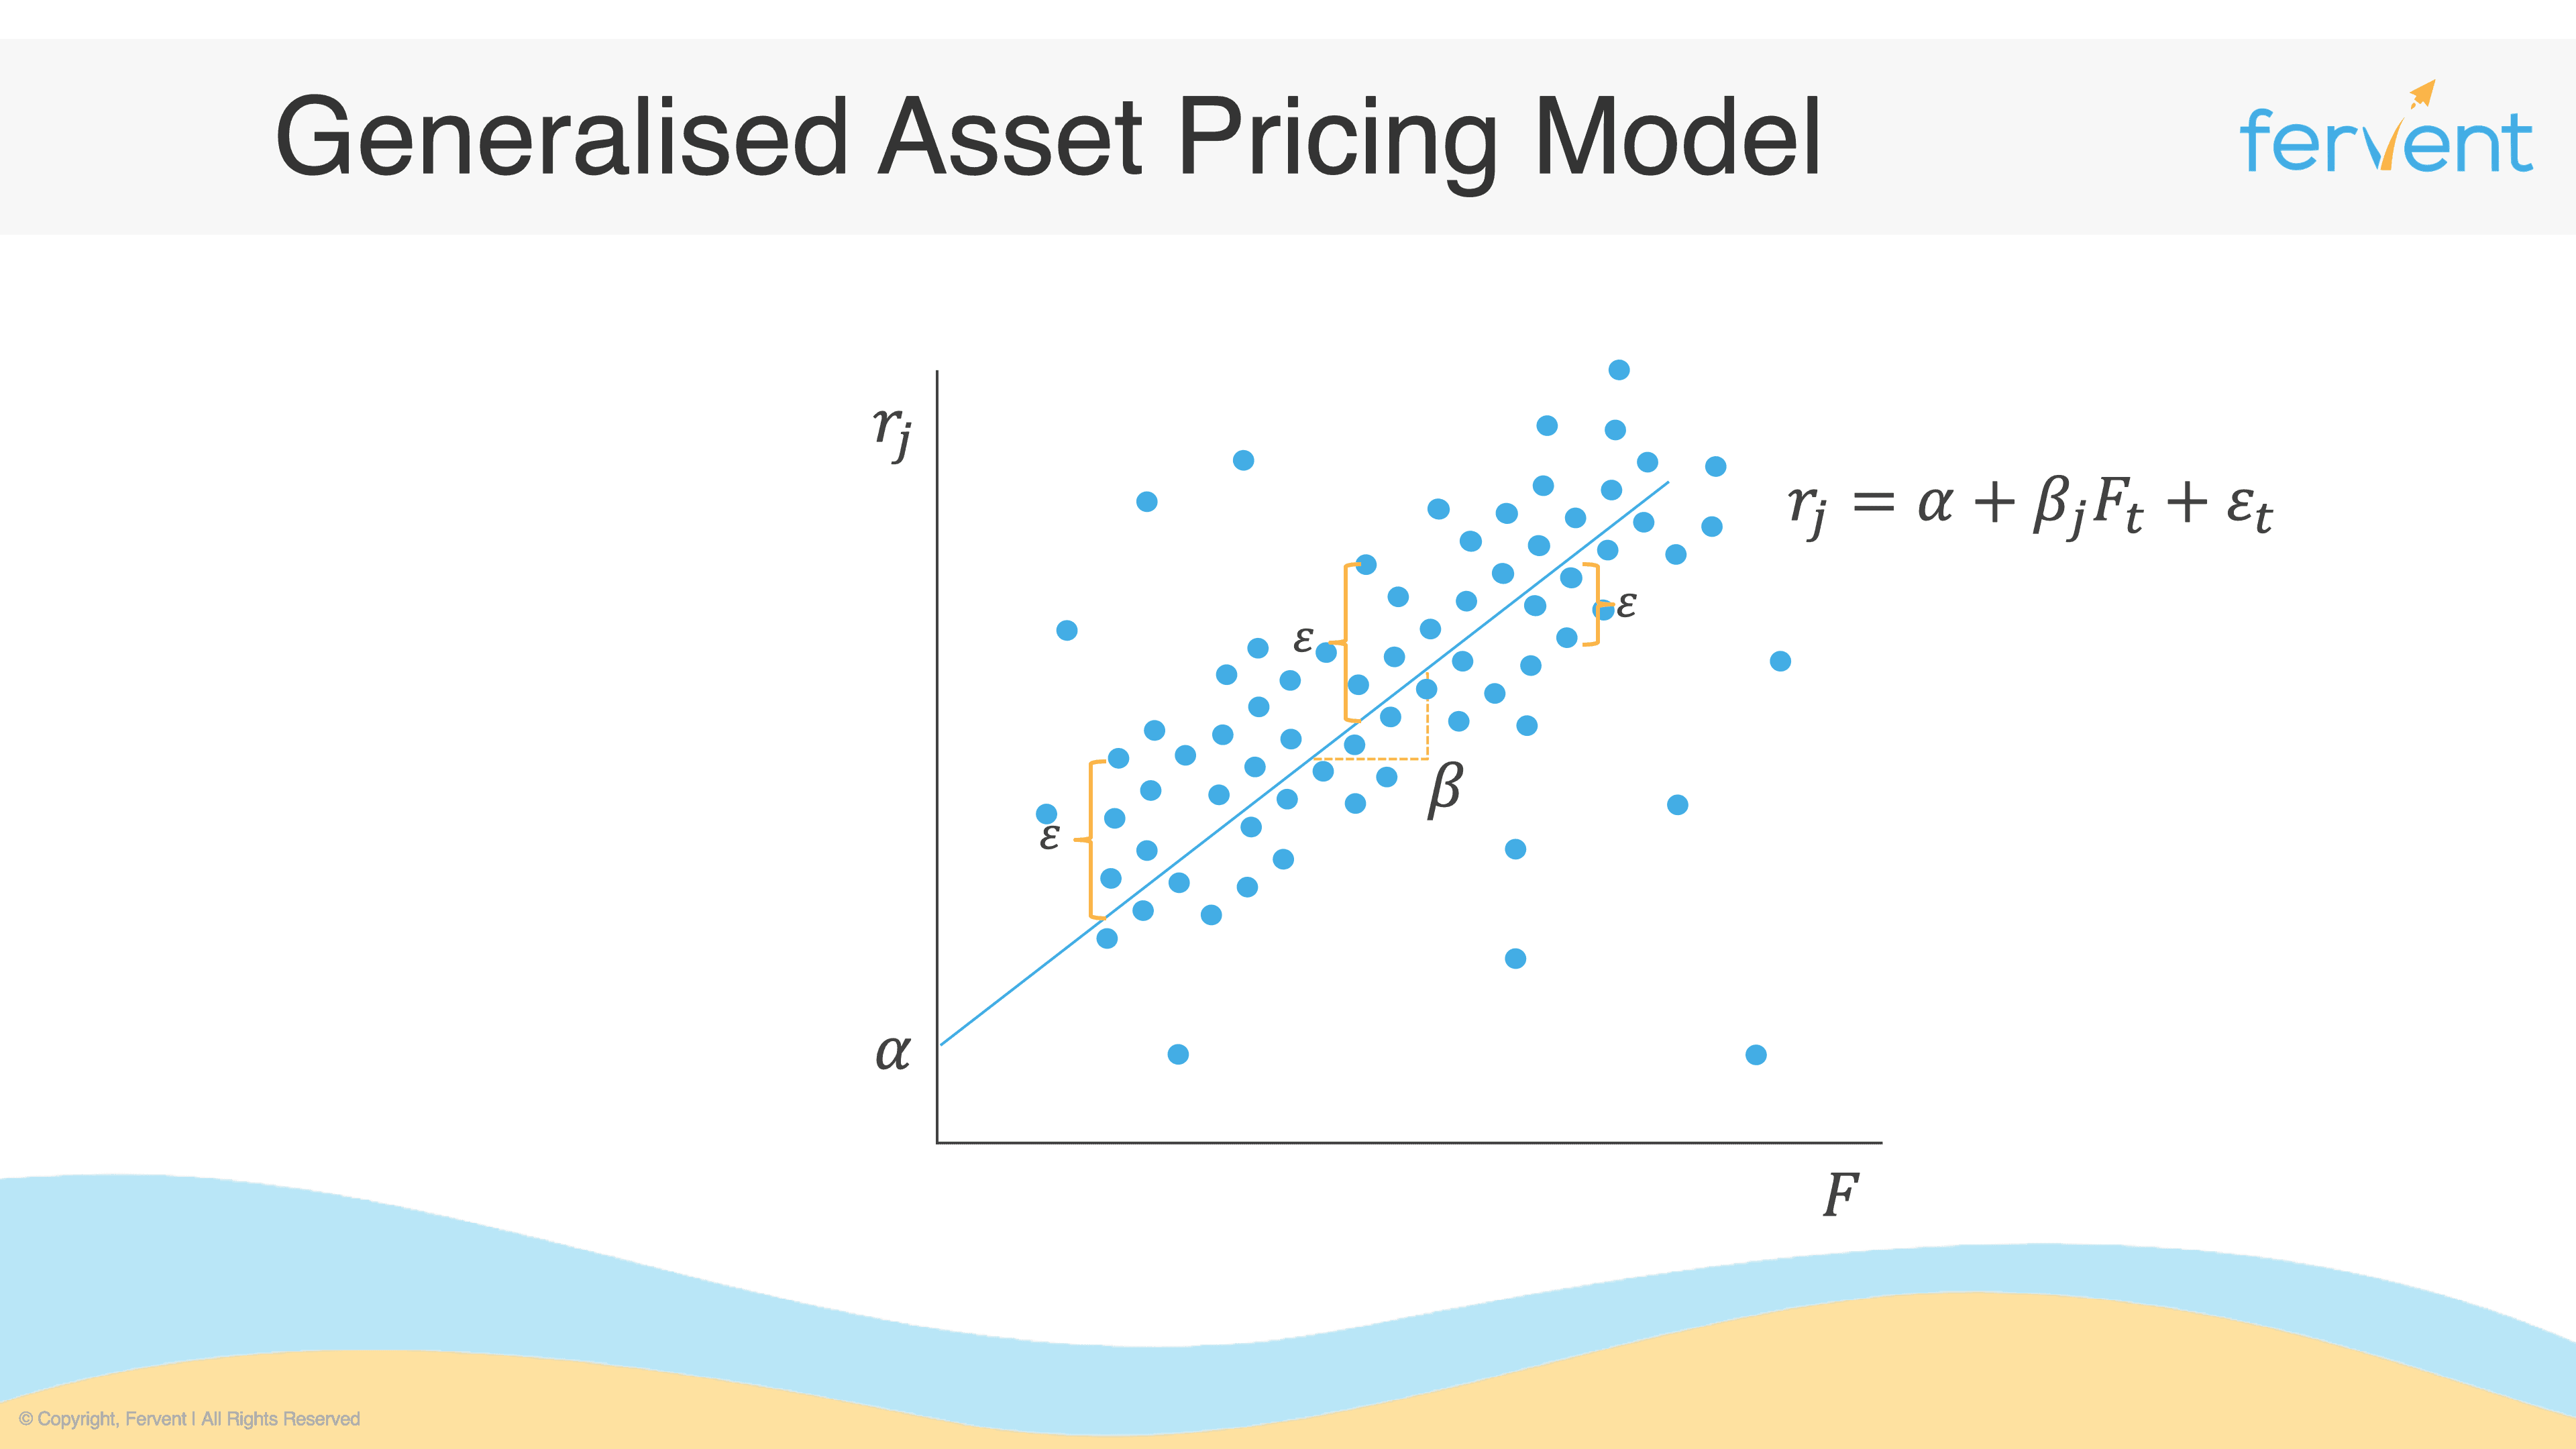 Slide showing generalised asset pricing model